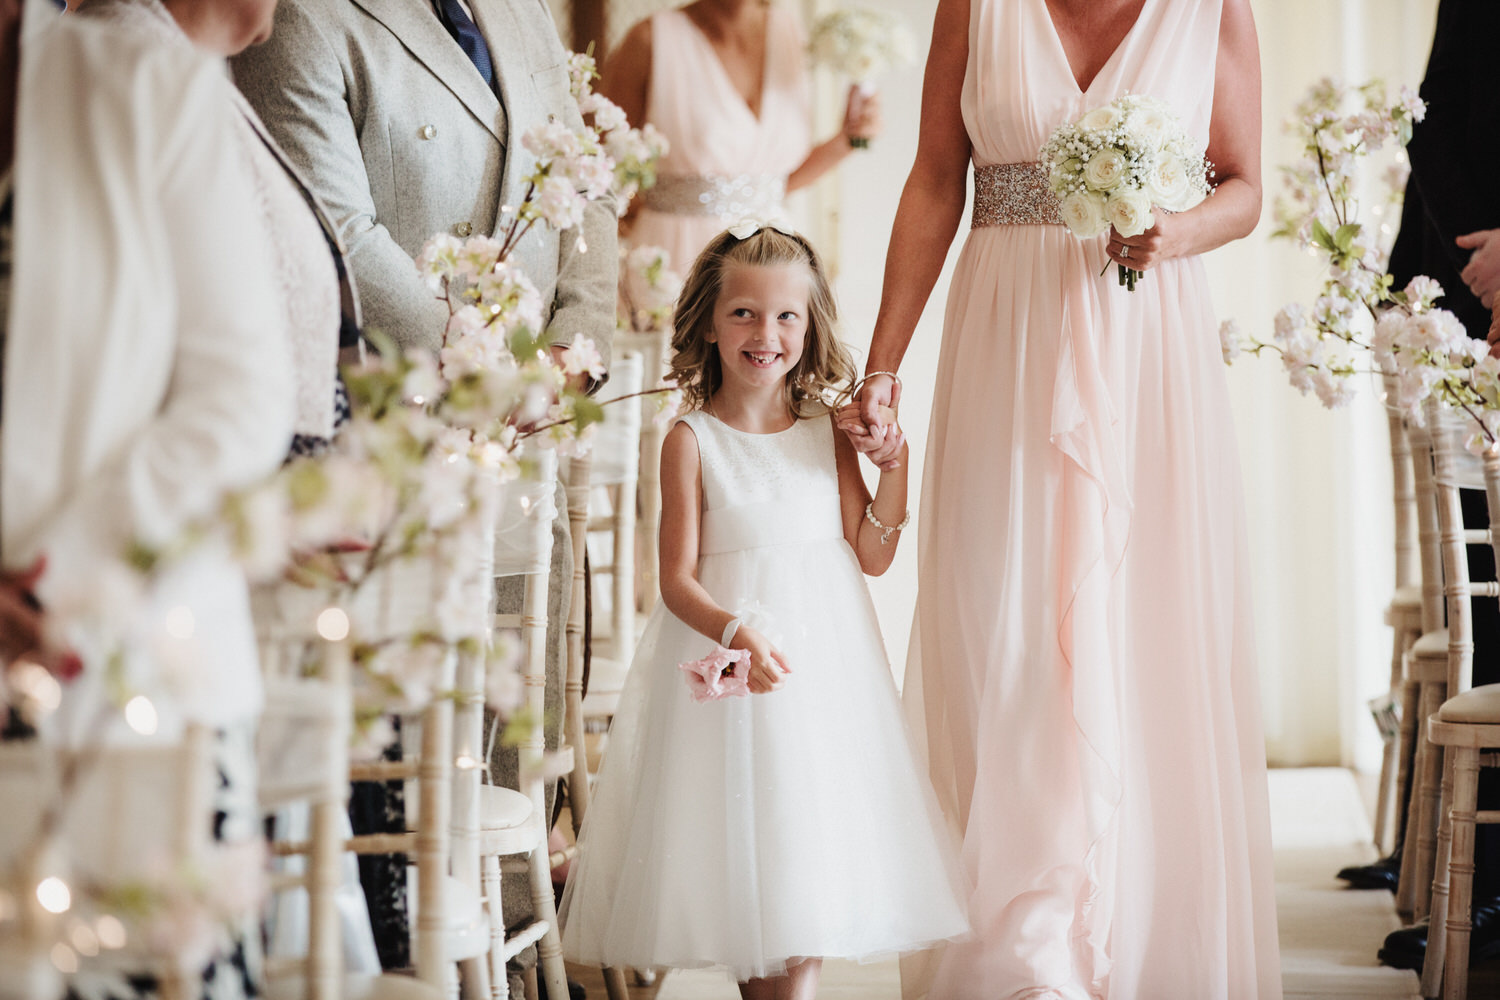 A happy flower girl walks down the aisle during the ceremony